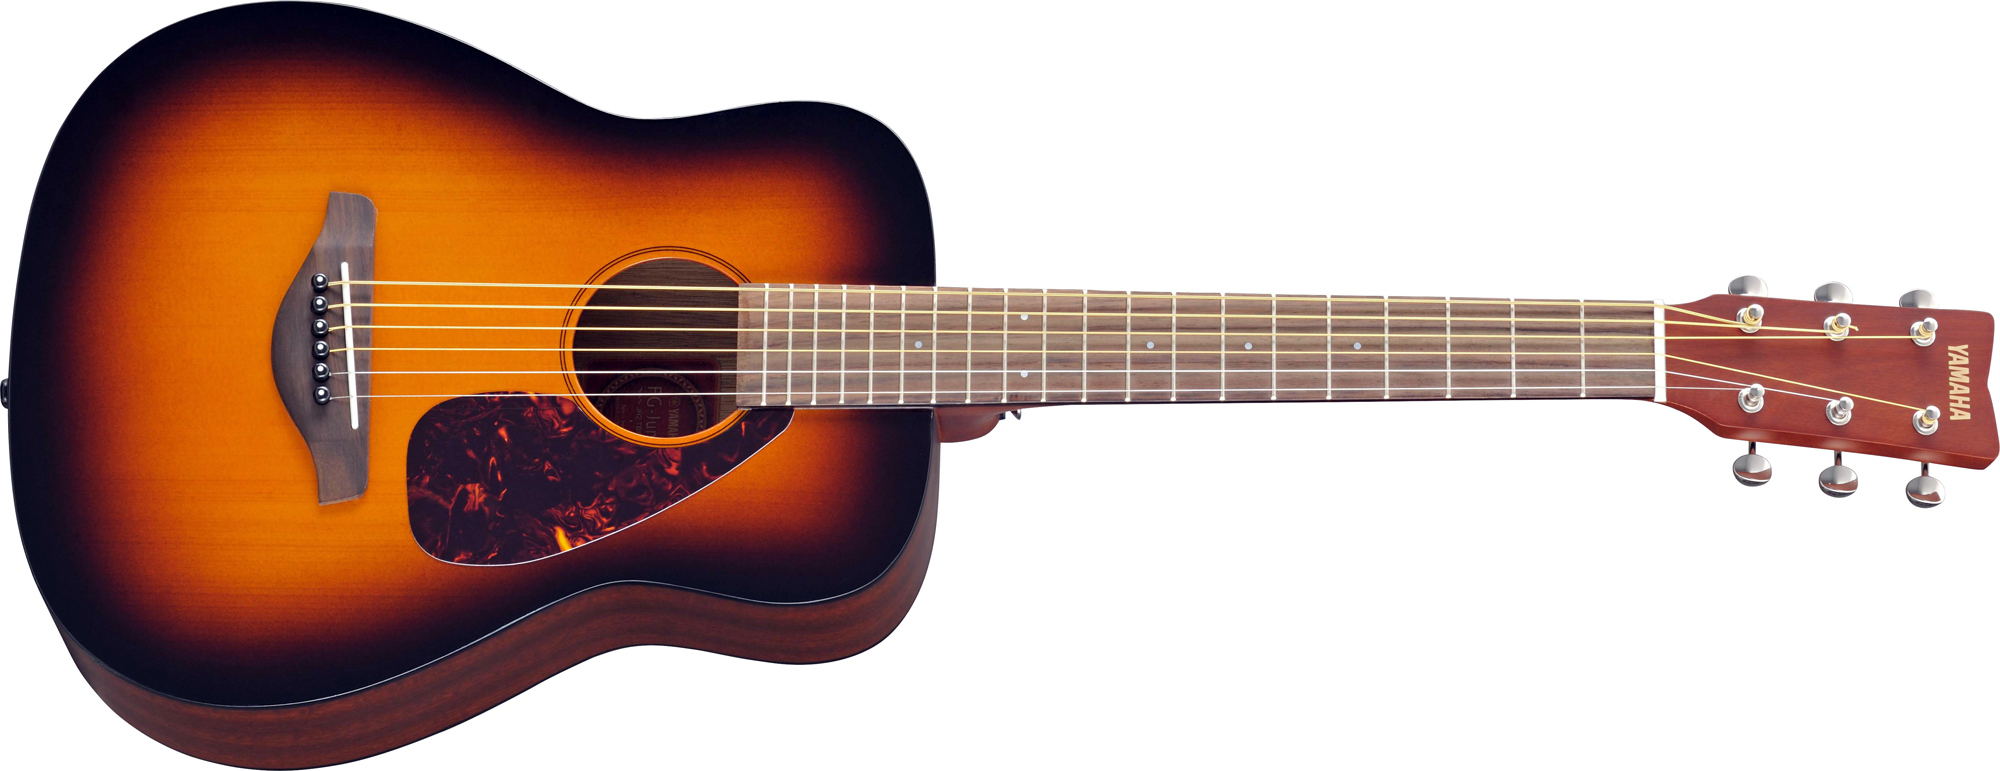 Yamaha jr2tbs 3 4 junior acoustic guitar in tobacco sunburst for New yamaha acoustic guitars